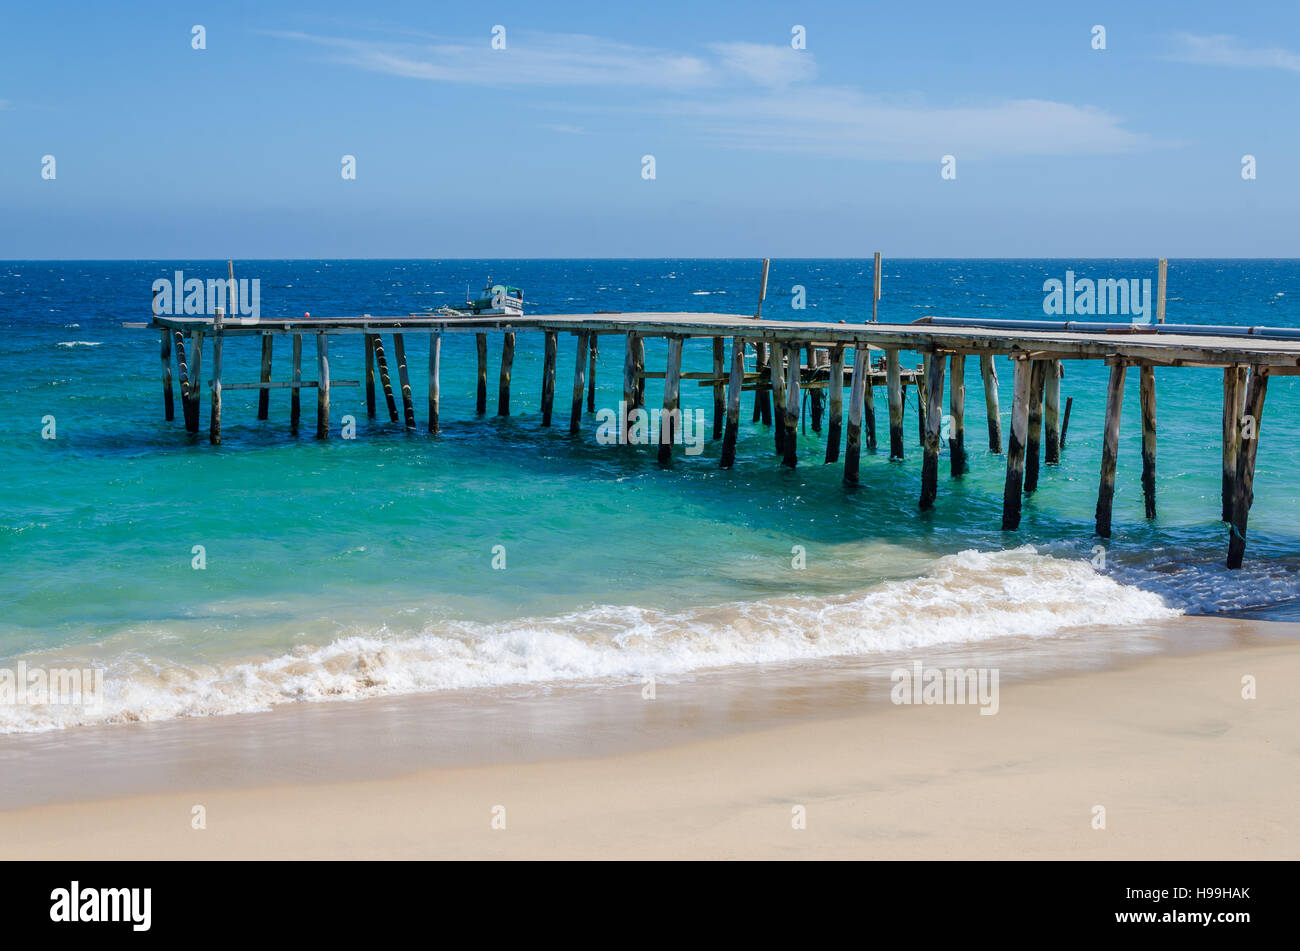 Long simple wooden jetty leading into turquoise blue ocean at small fishing village Mucuio in Angola. - Stock Image